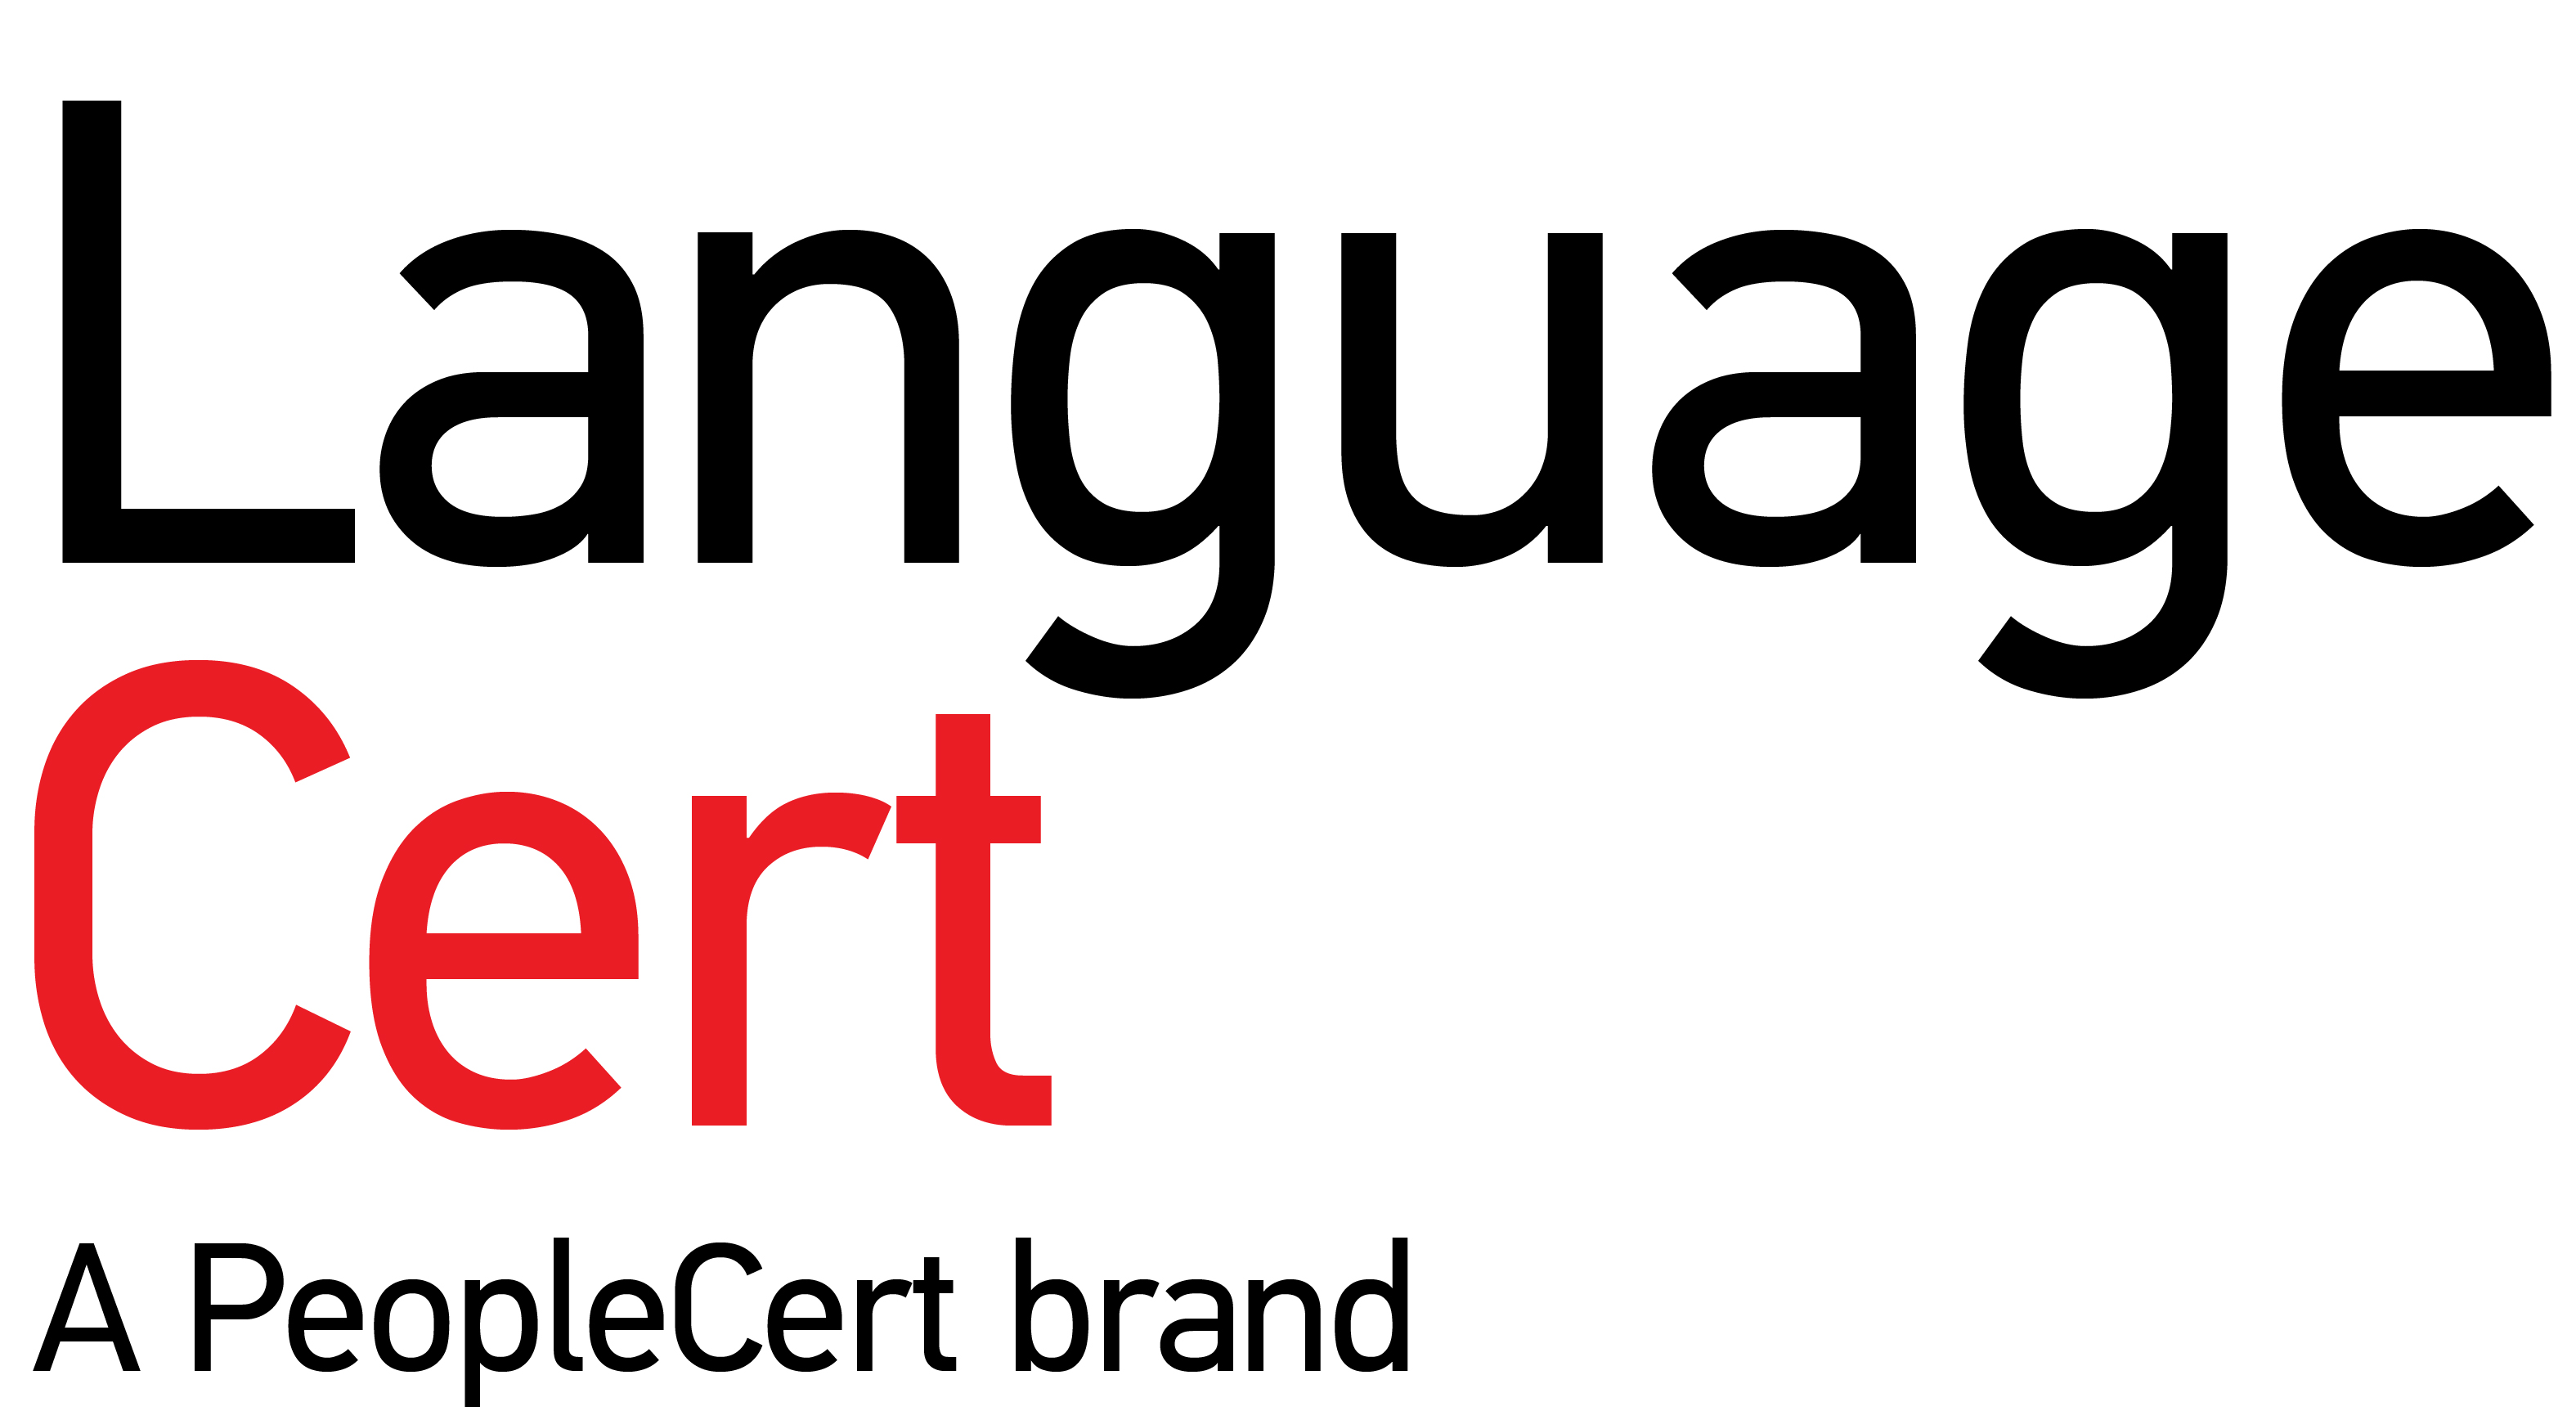 LanguageCert logo jpeg.jpg